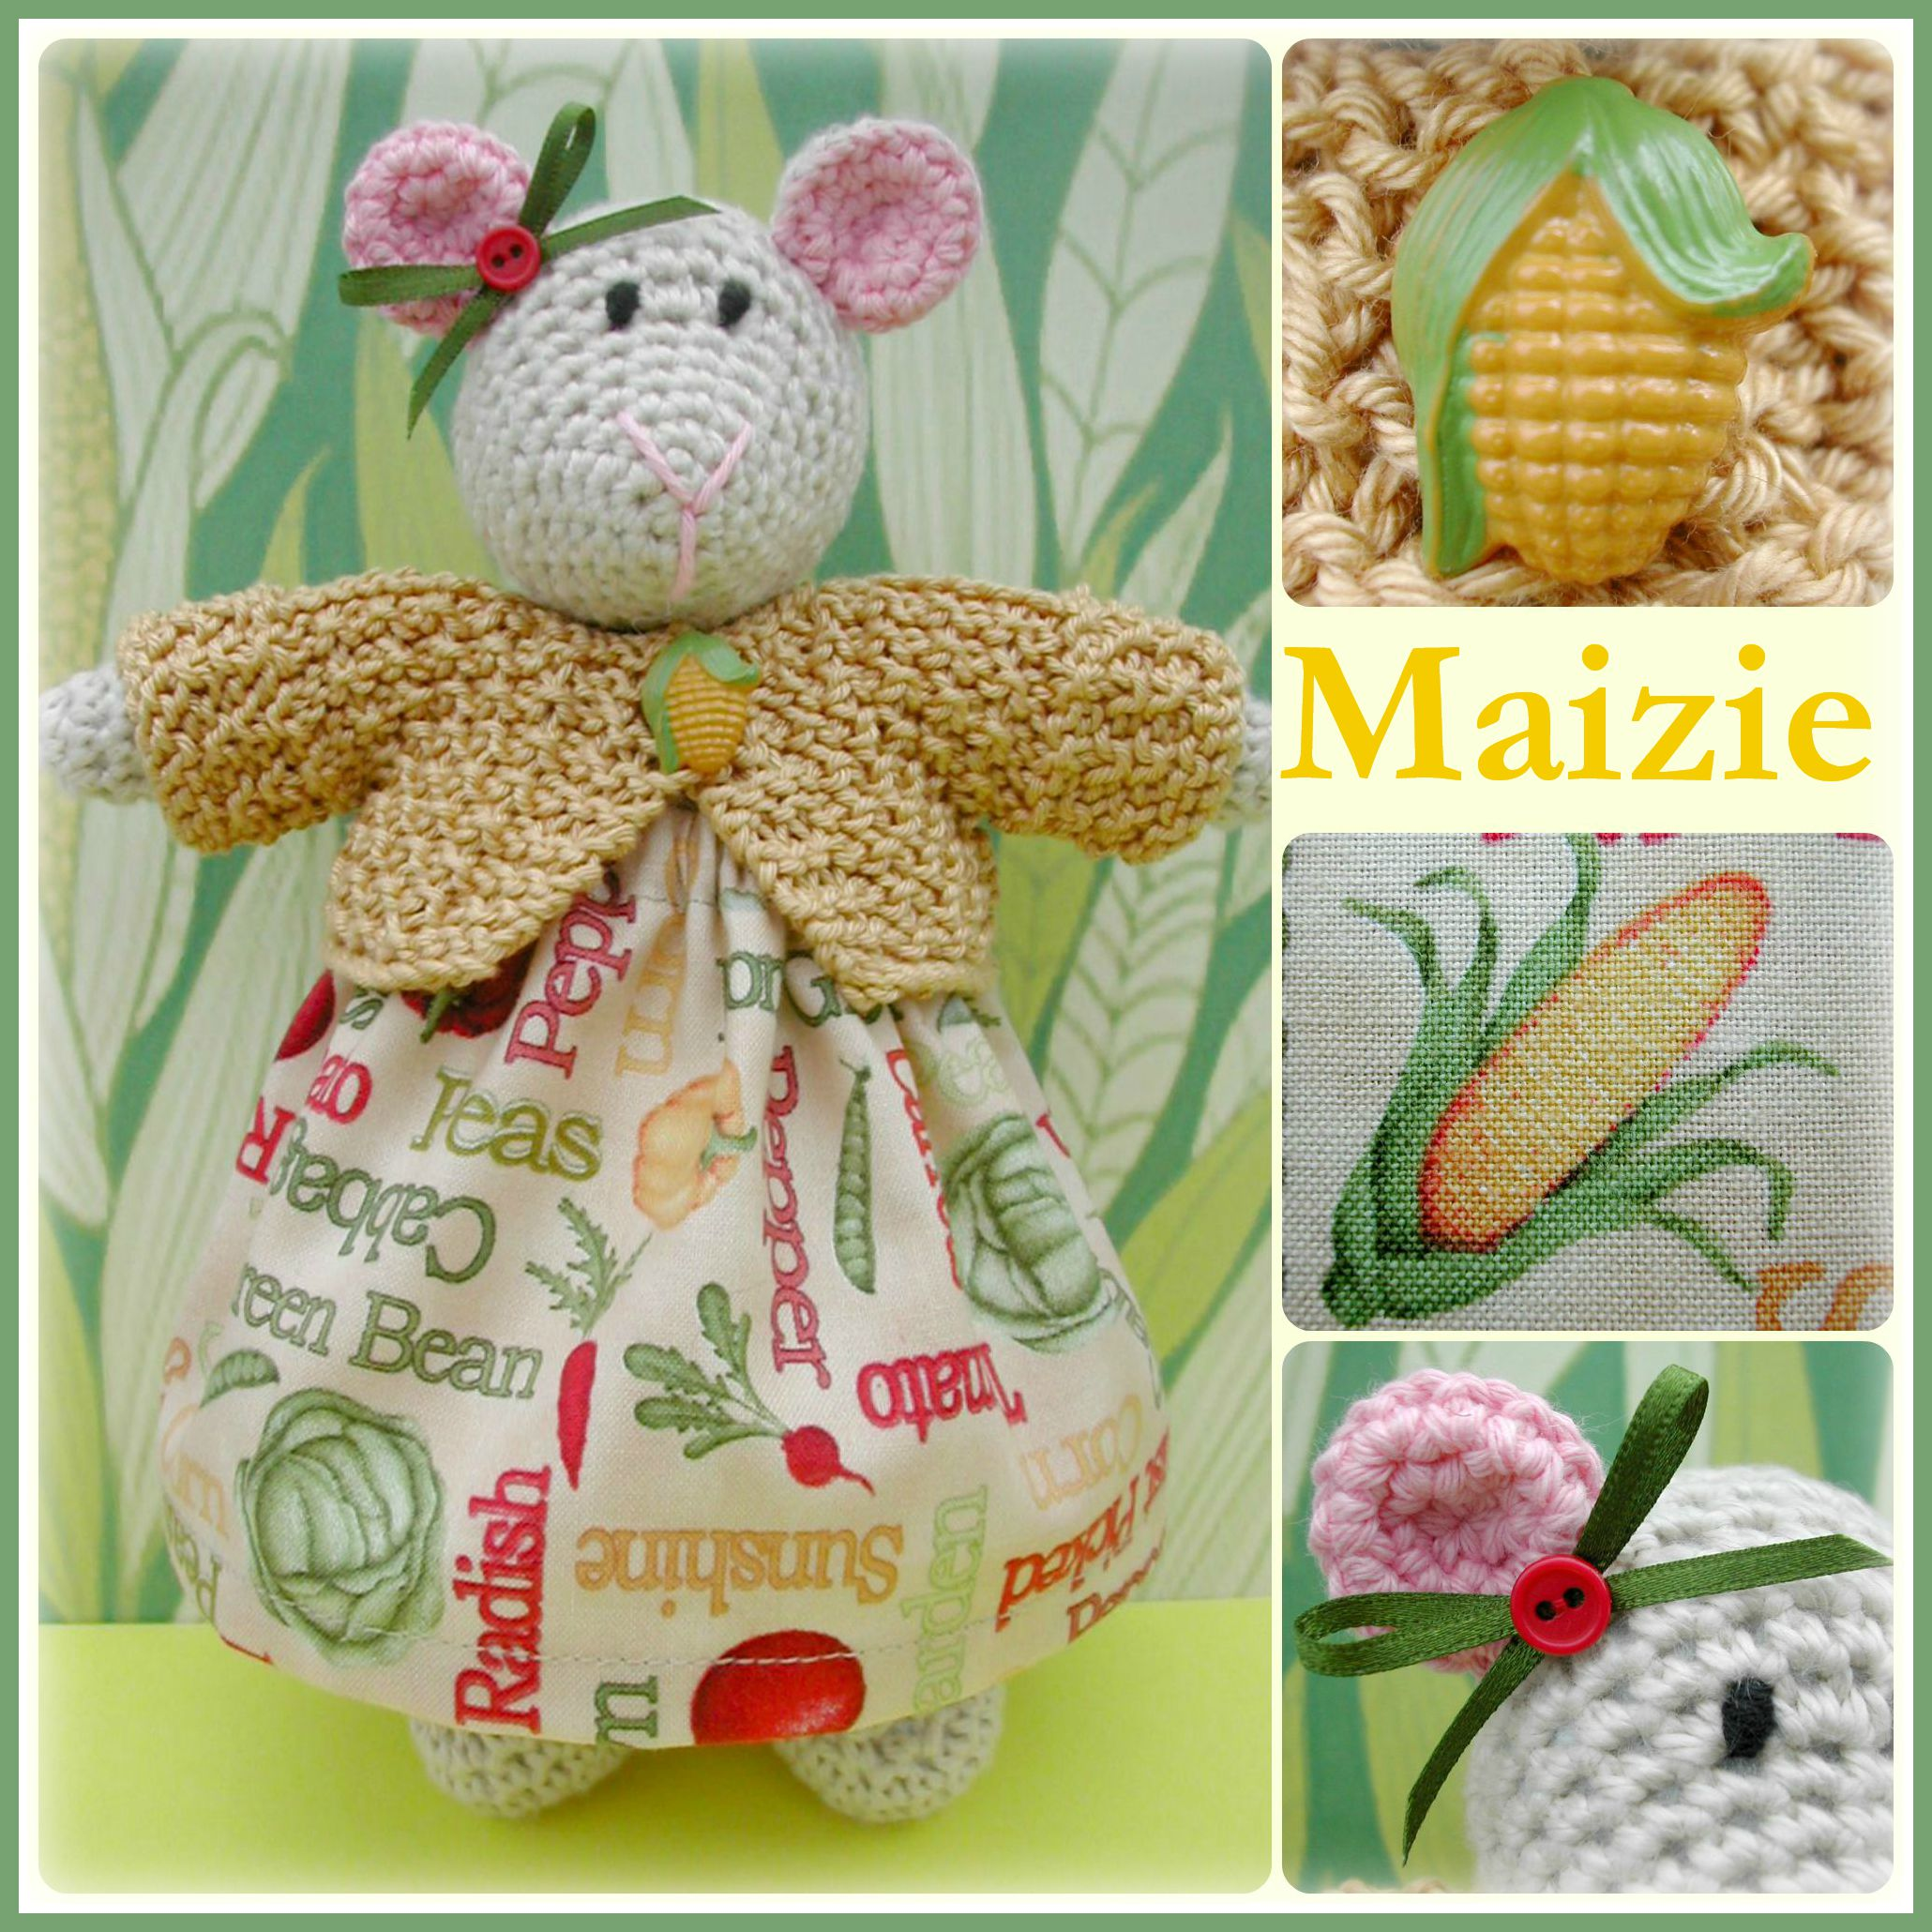 Maizie Collage